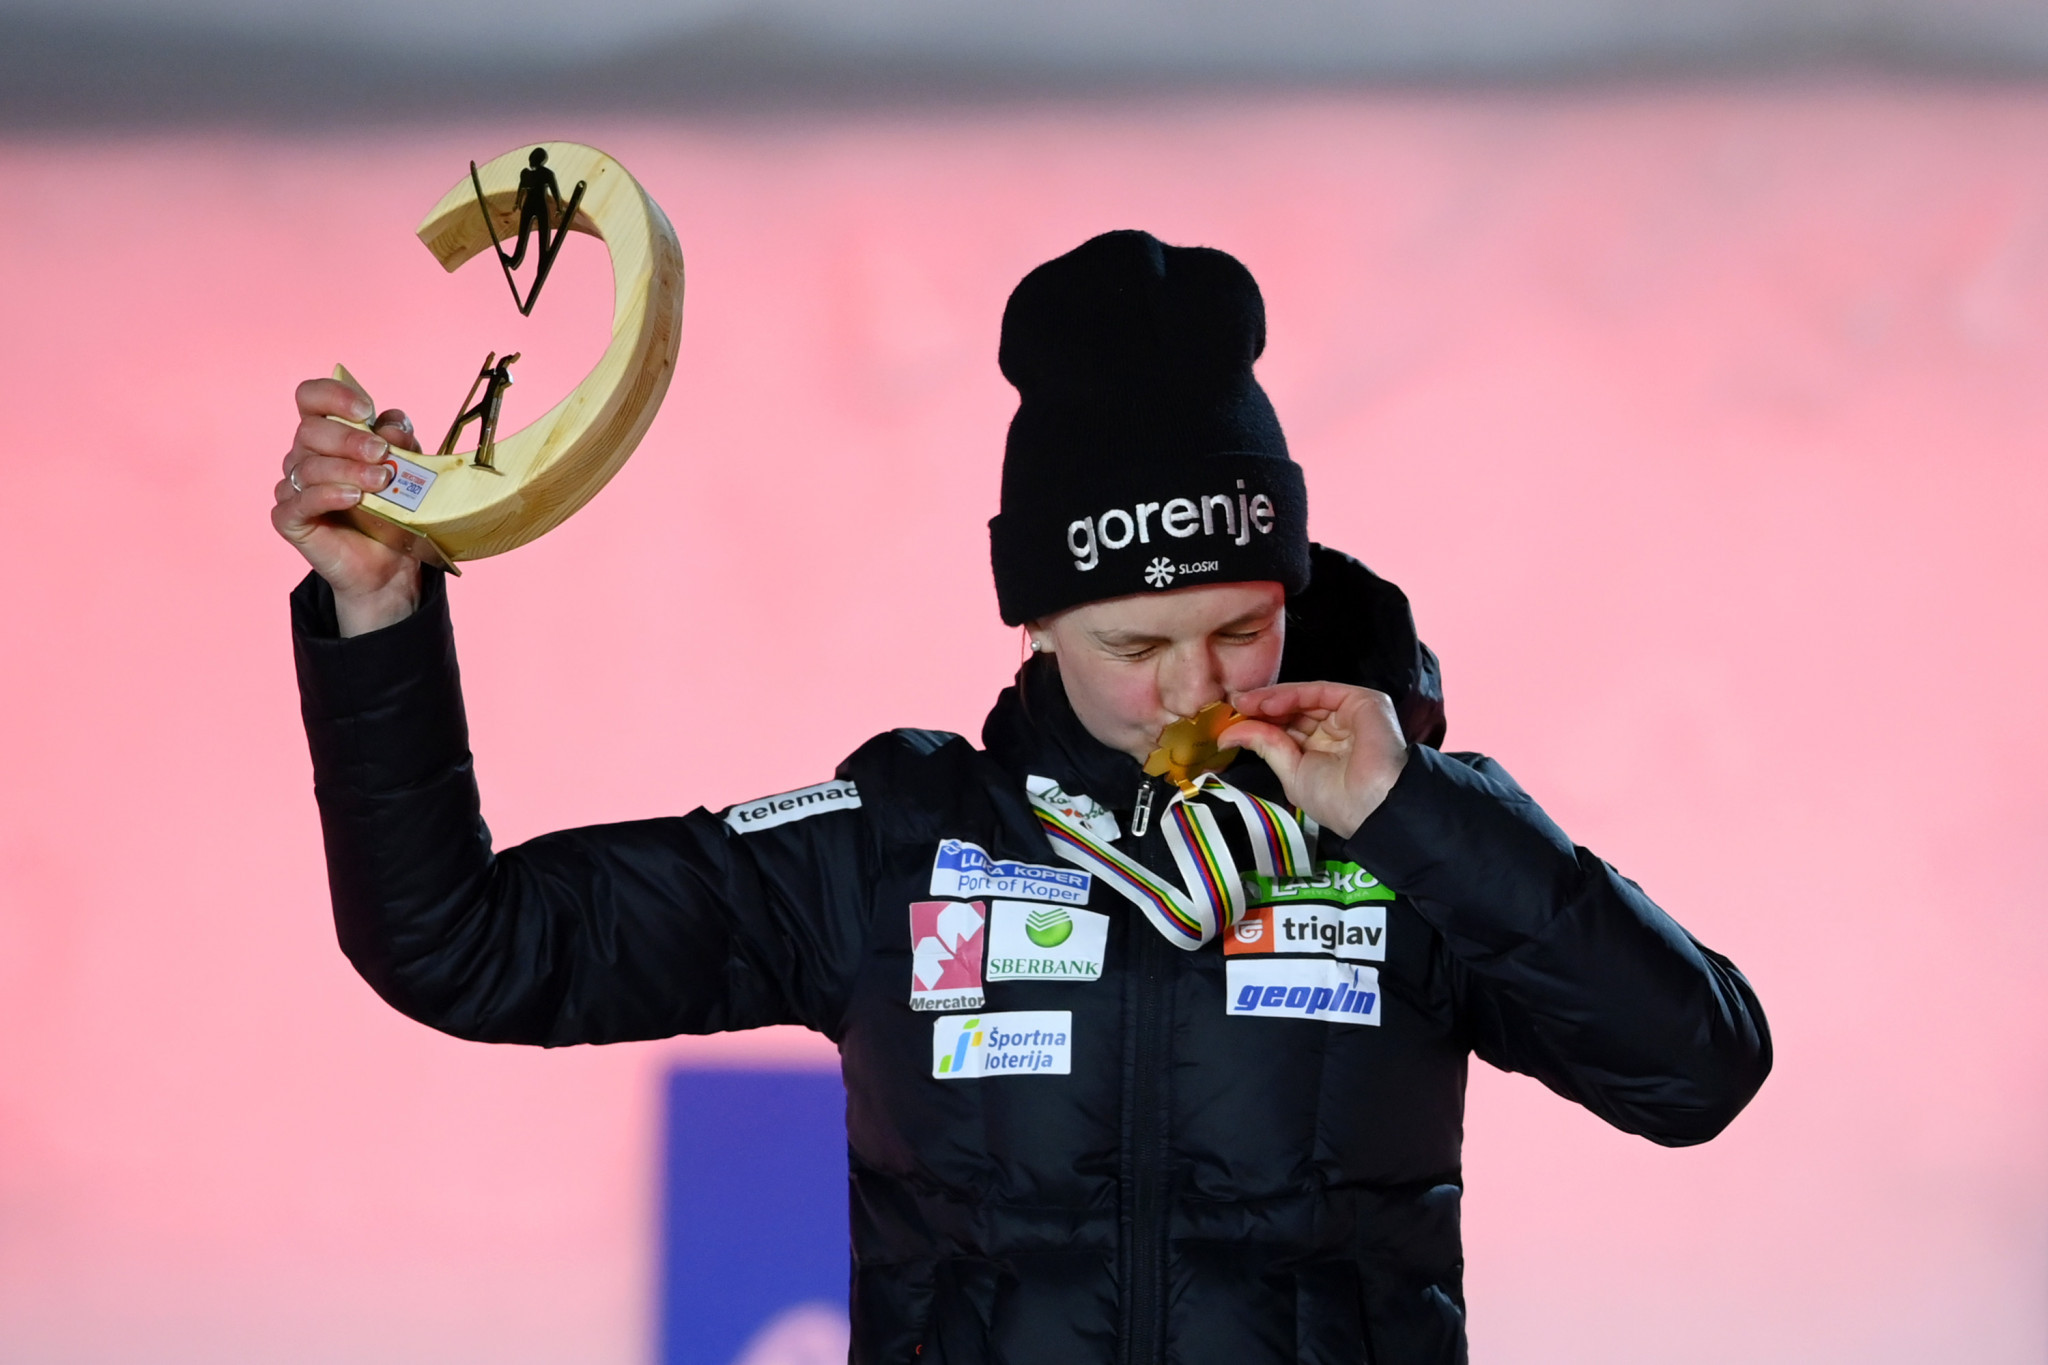 Slovenia's Ema Klinec triumphed in the women's normal hill ski jumping event ©Getty Images